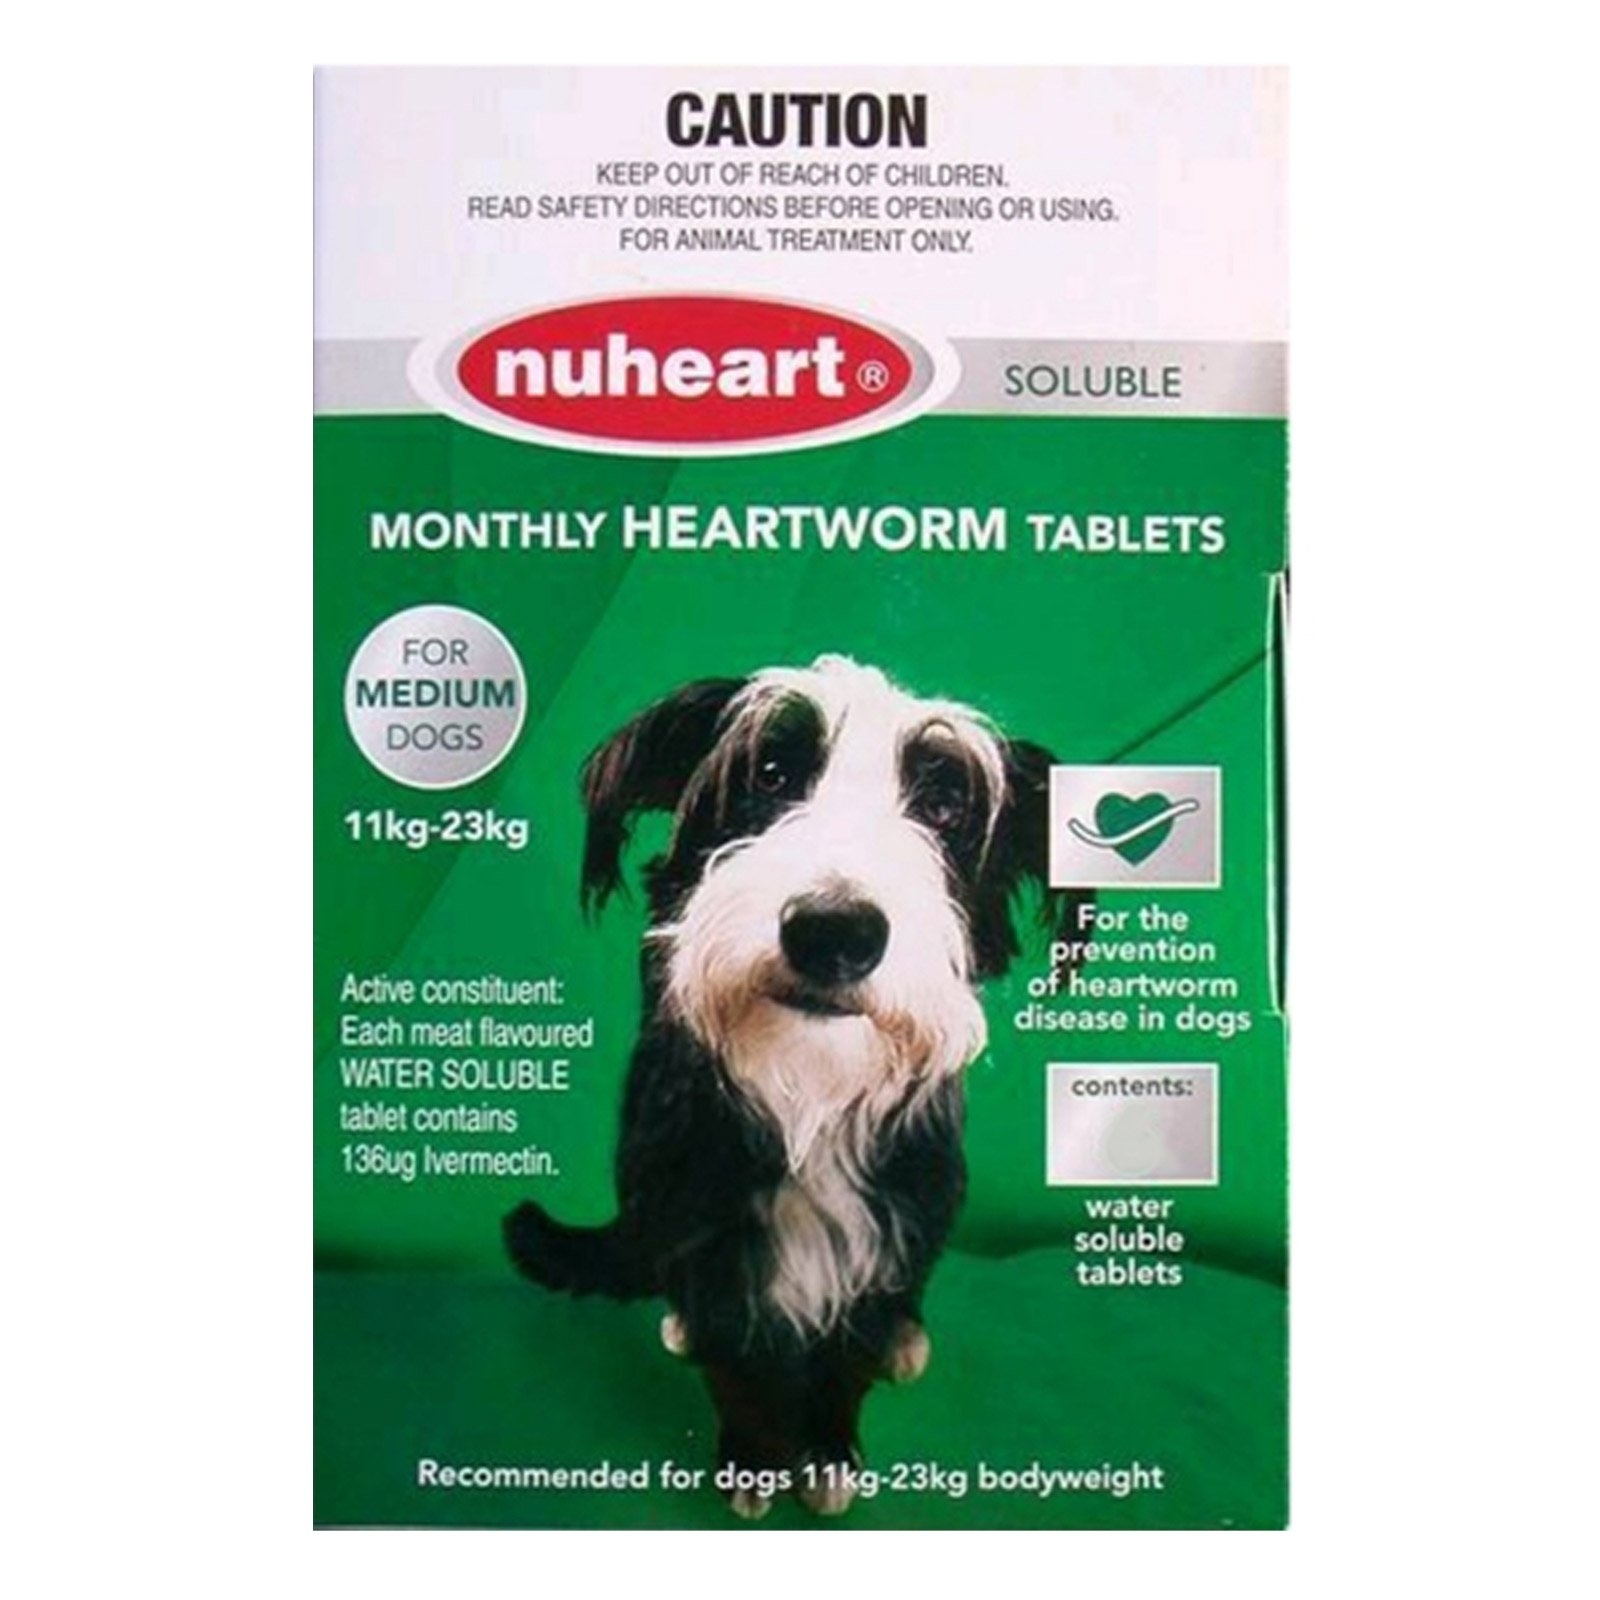 Nuheart For Dogs Generic Heartgard Tabs For Medium Dogs - Nuheart 11 To 23Kg (Green)